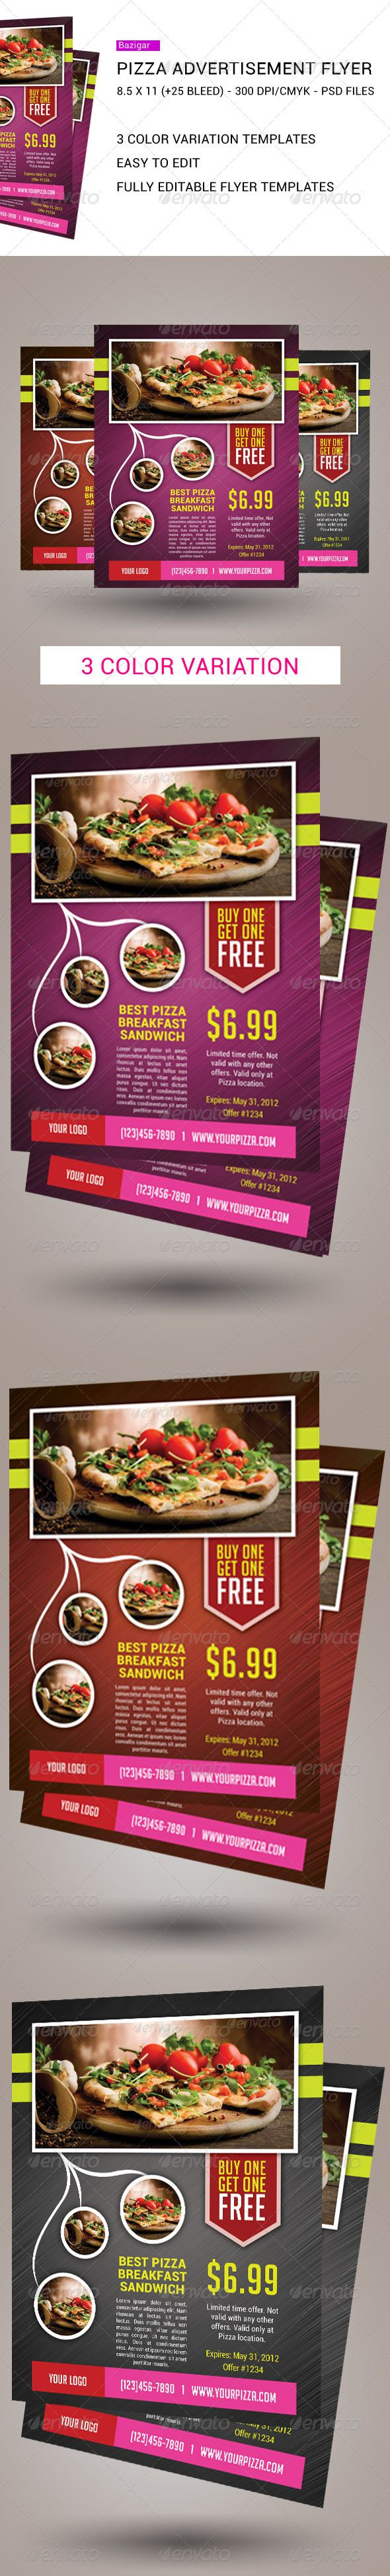 best images about flyers advertising pizza and ultimate pizza flyers